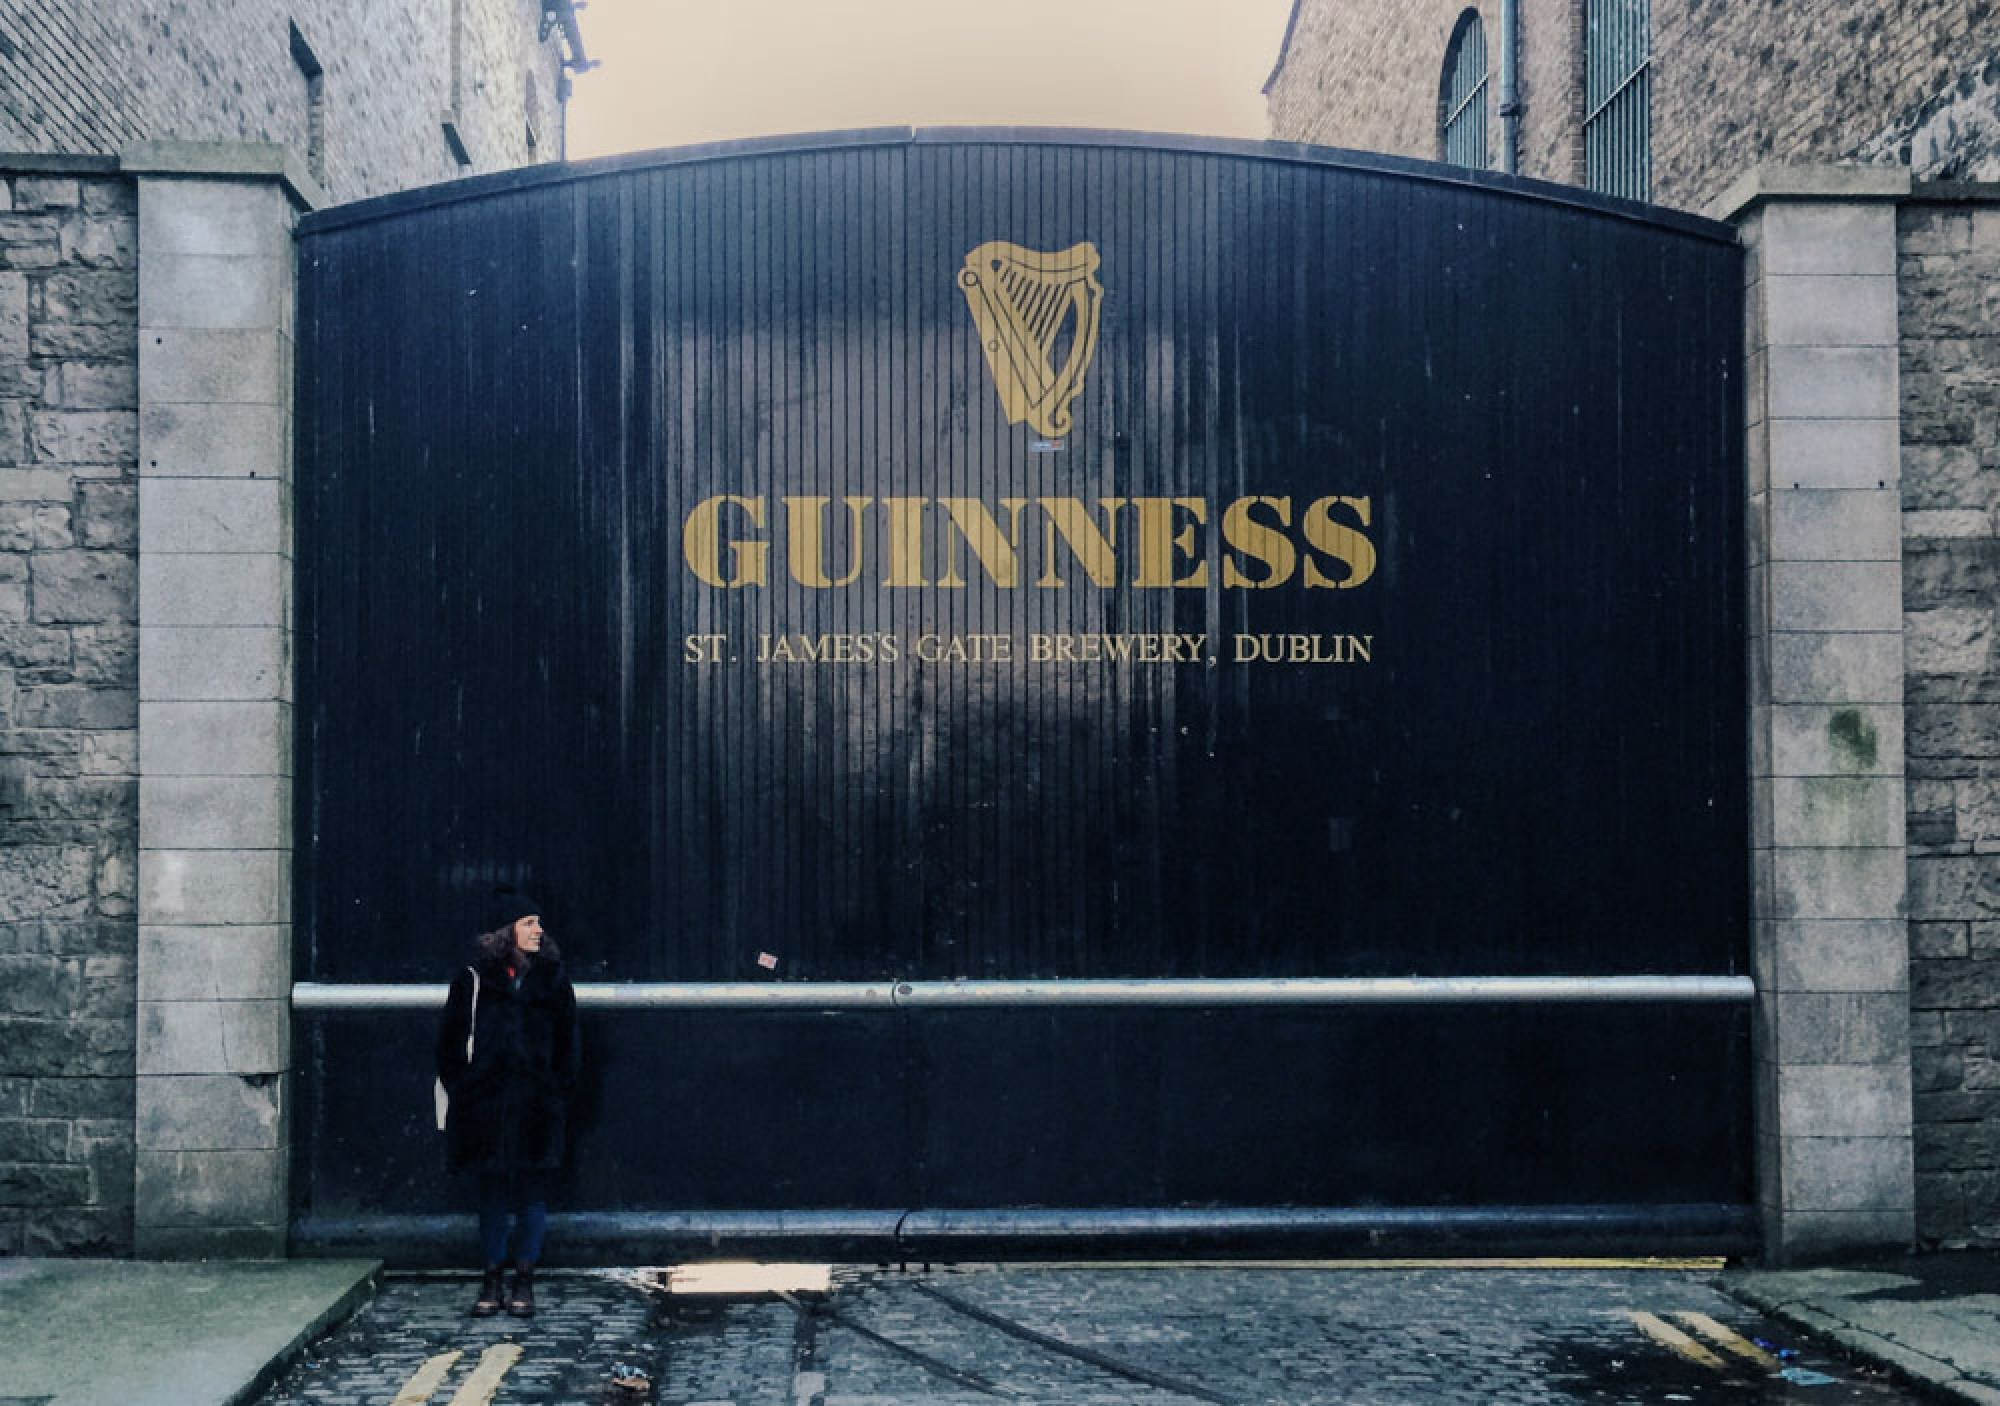 Things to do in Dublin: Guinness Storehouse